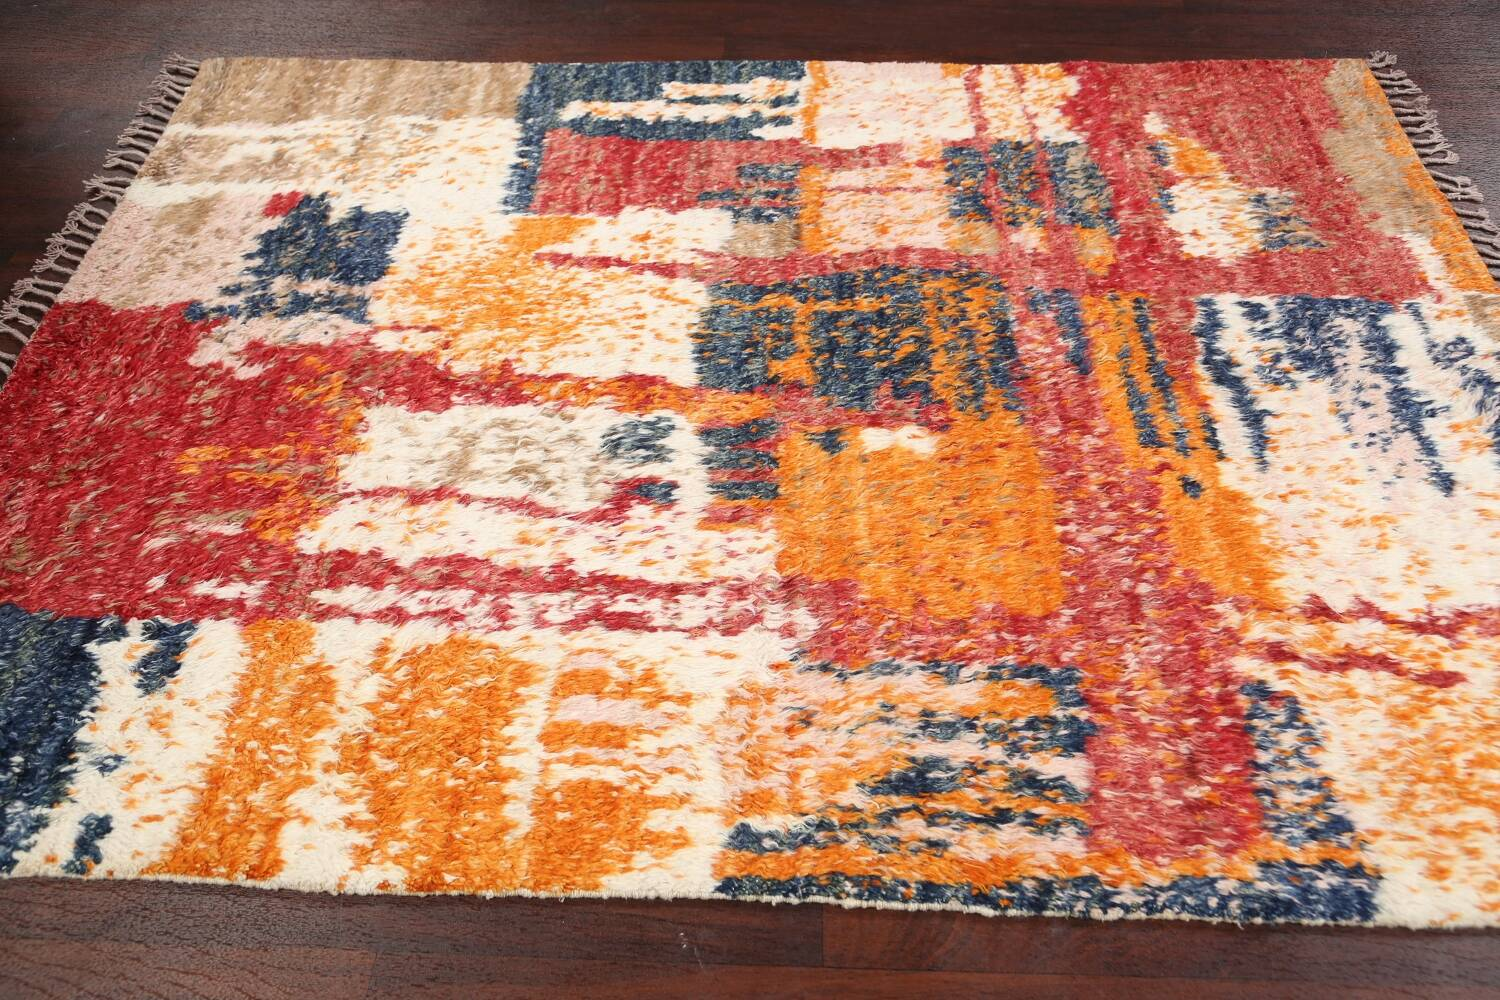 Abstract Moroccan Oriental Area Rug 5x6 image 12